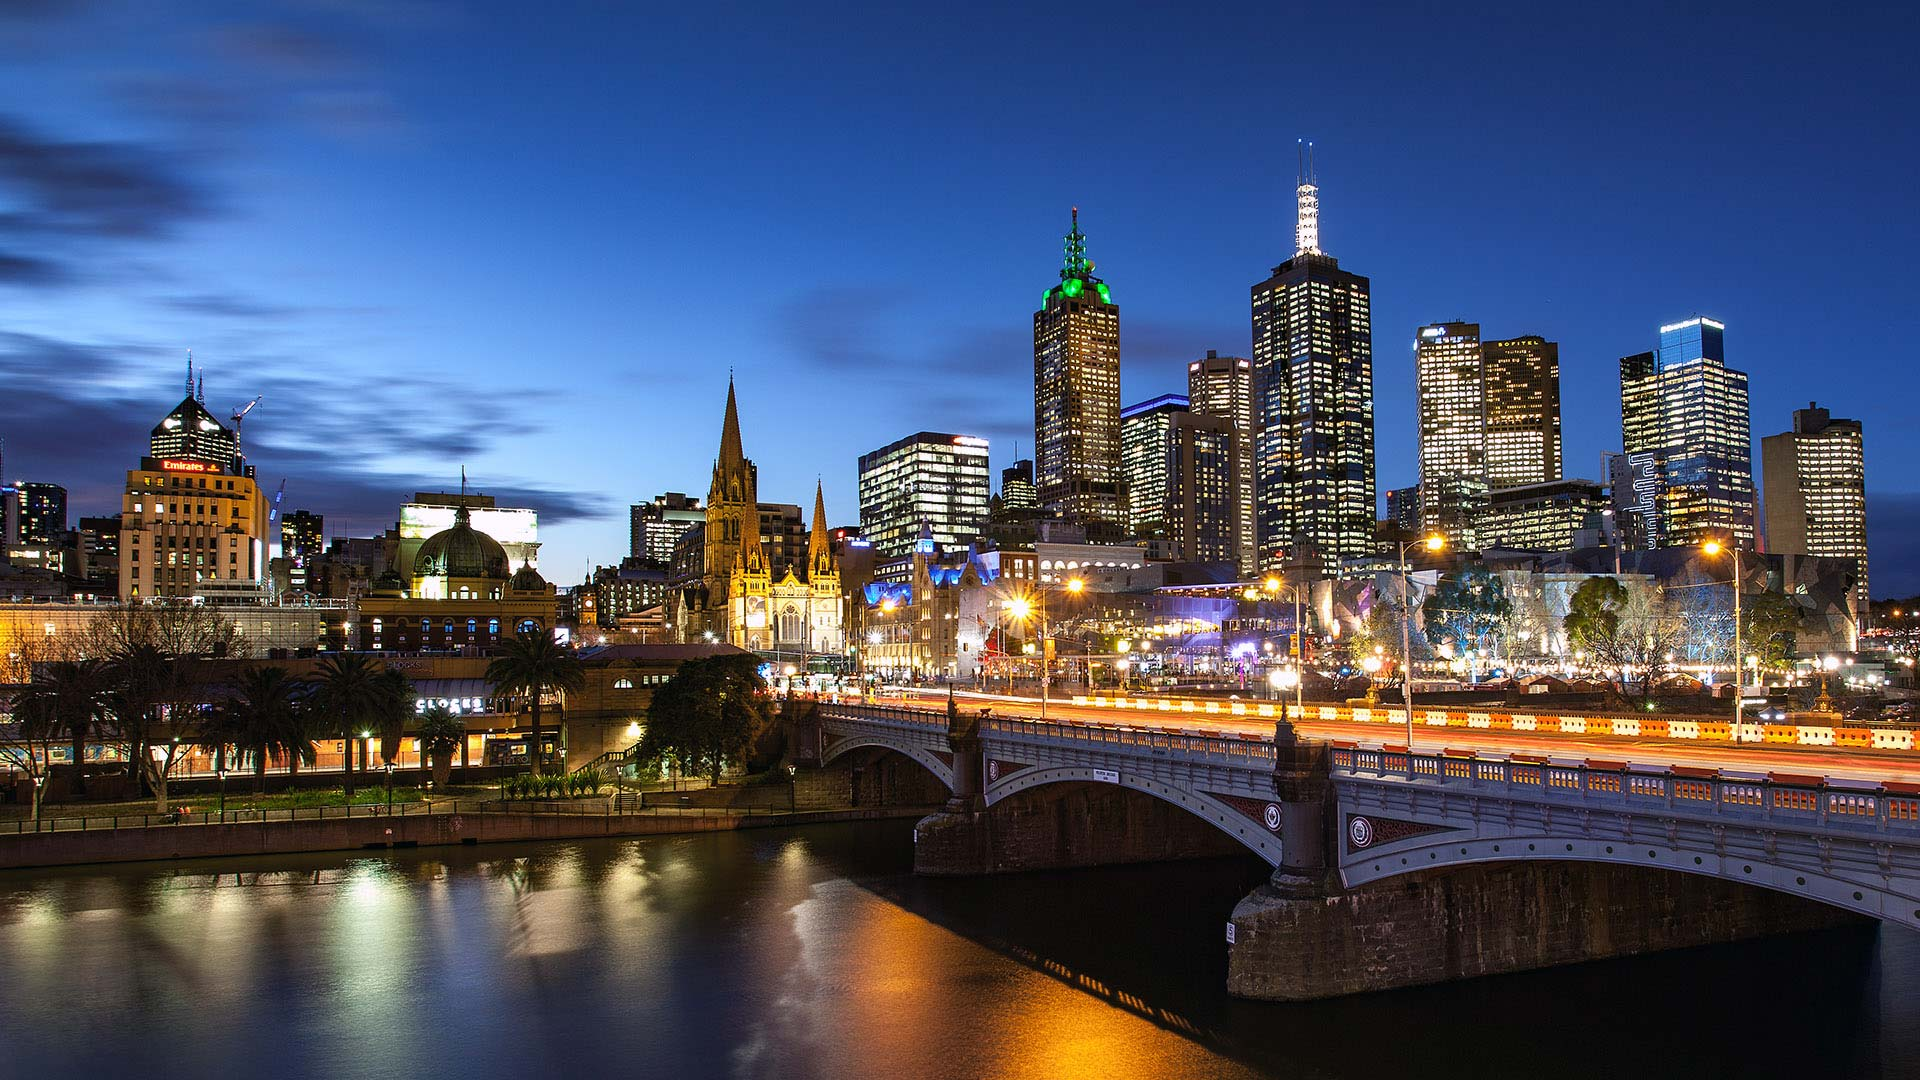 Panorama to illustrate dating in melbourne